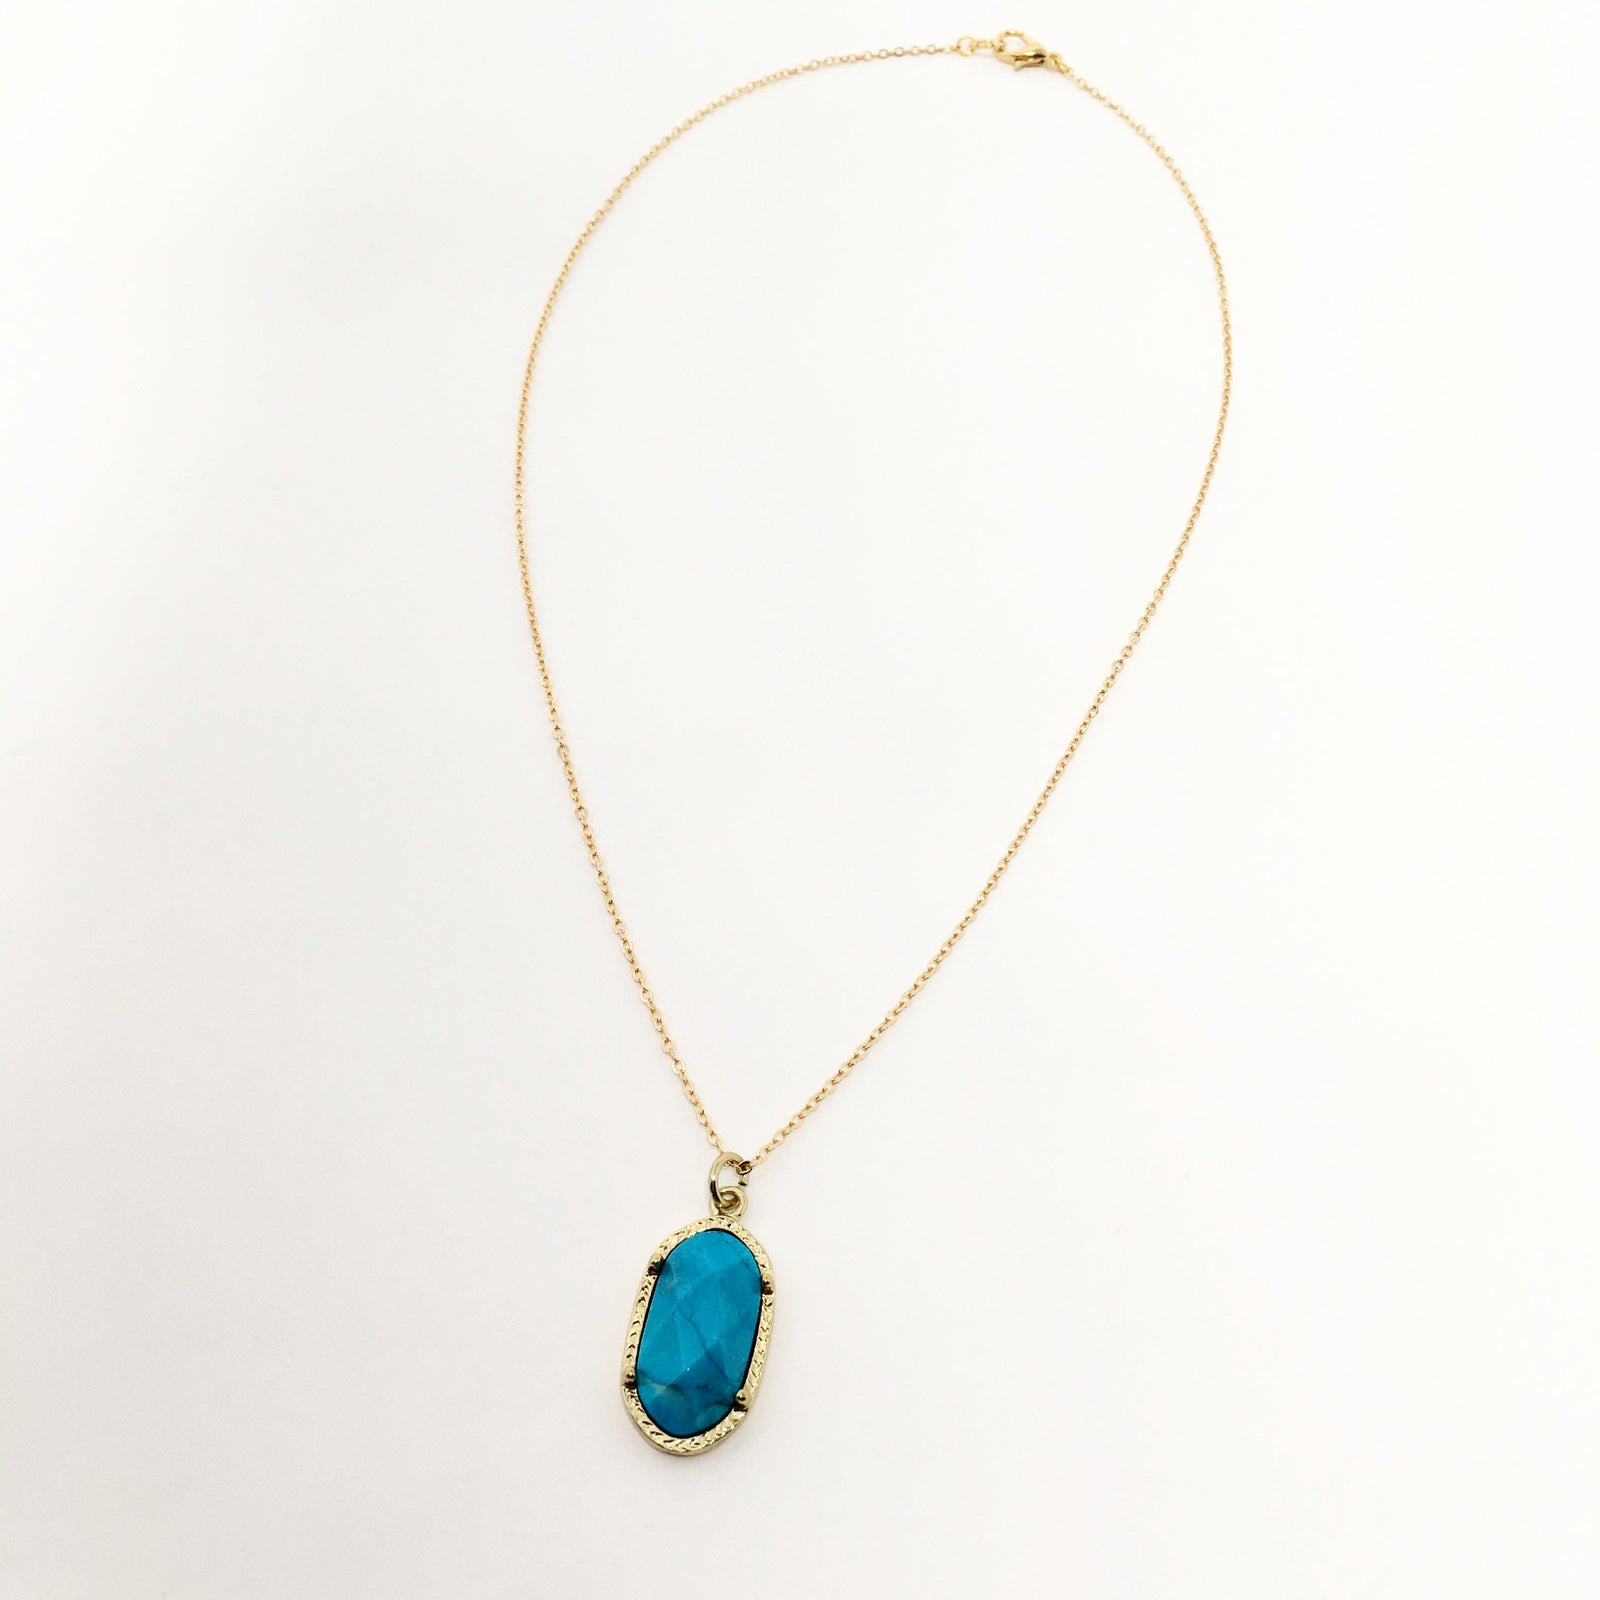 TURQUOISE OVAL STONE NECKLACE | GOLD